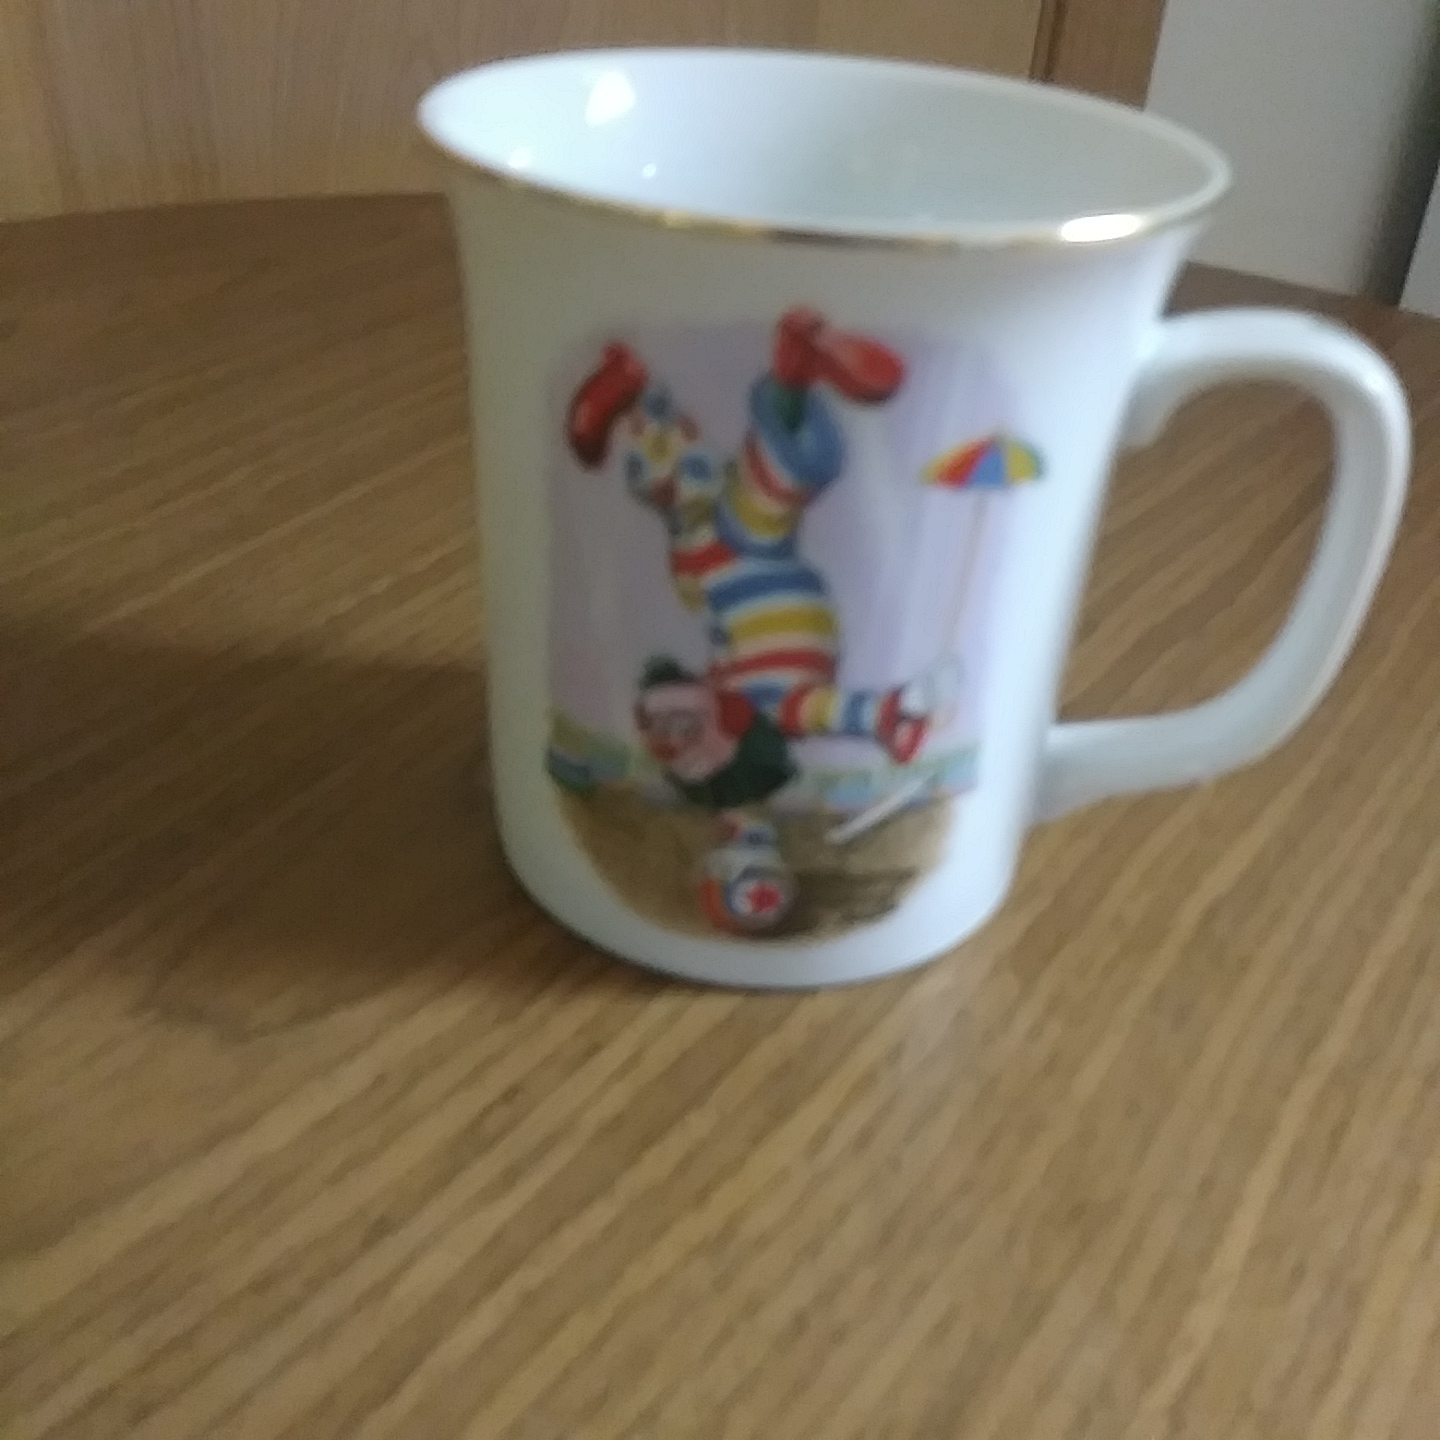 "Whimsical The World of Clowns presents"" Clyde On A Roll LMI 1984 Mug/Cup"""